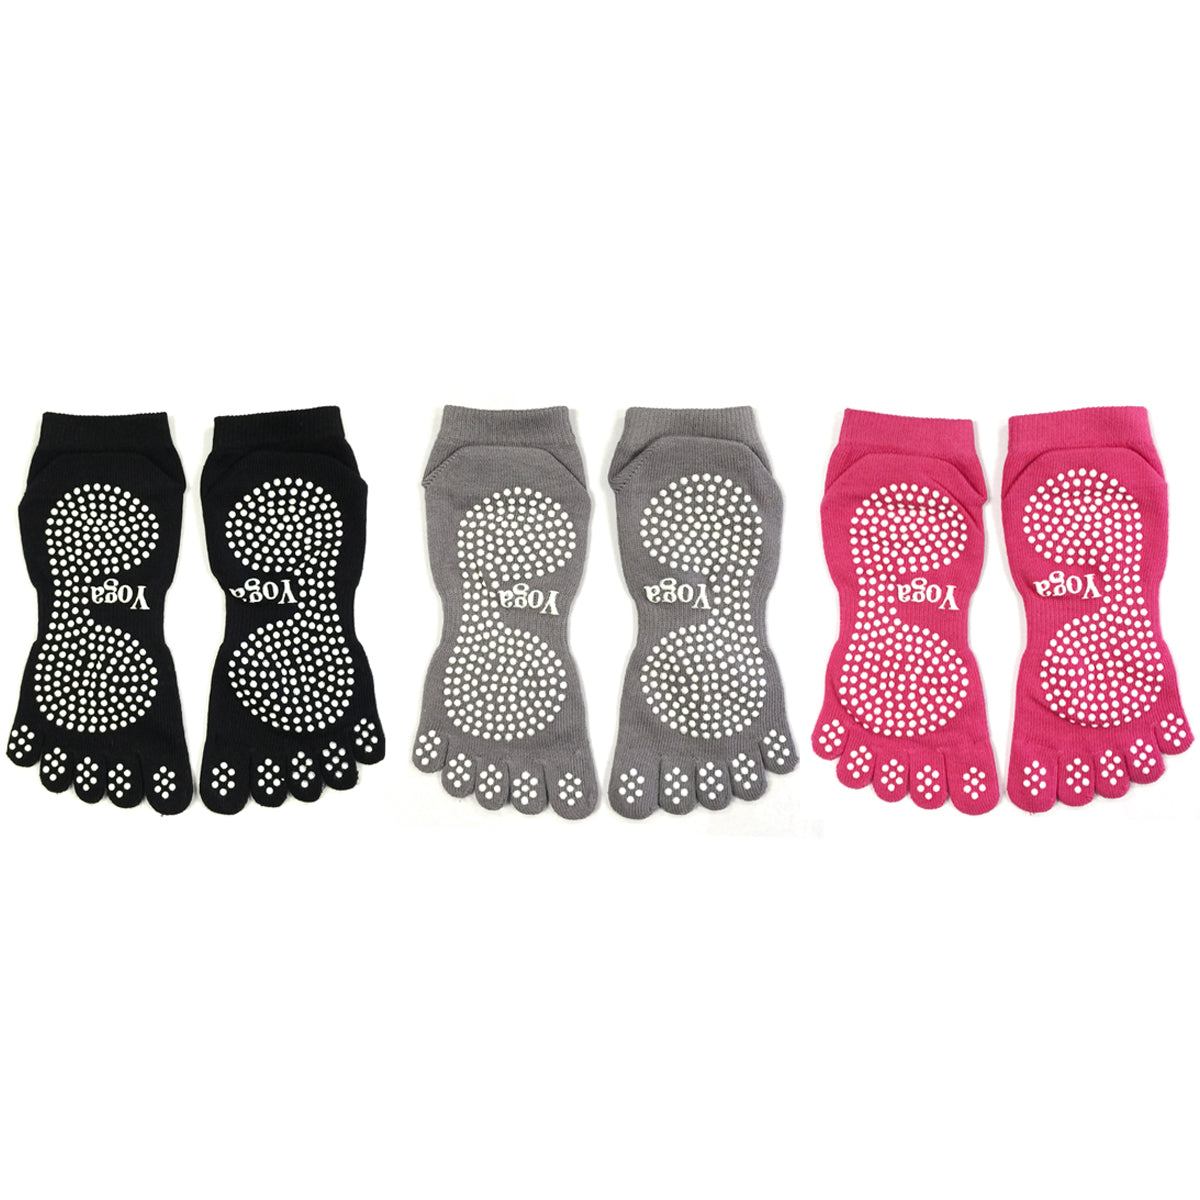 Wrapables Full Toe Yoga Pilates Socks with Grips, Set of 3